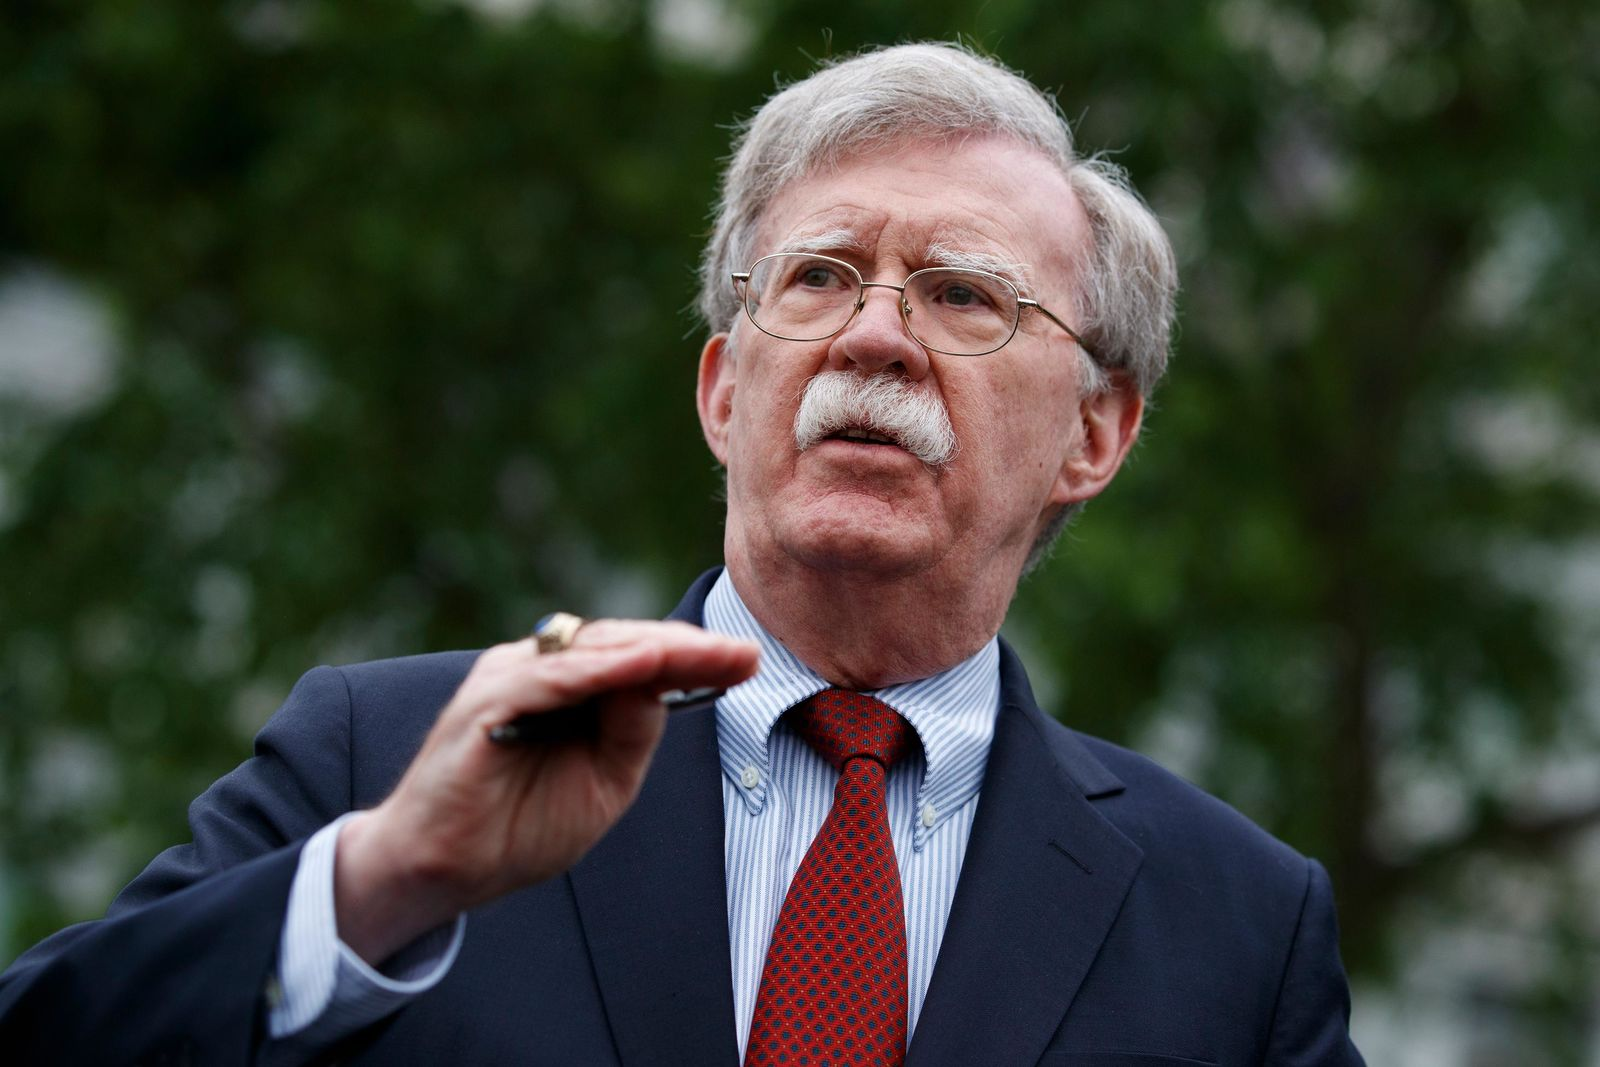 FILE - In this Wednesday, May 1, 2019 file photo, National Security Adviser John Bolton talks to reporters about Venezuela, outside the White House, in Washington.{ } (AP Photo/Evan Vucci, File)